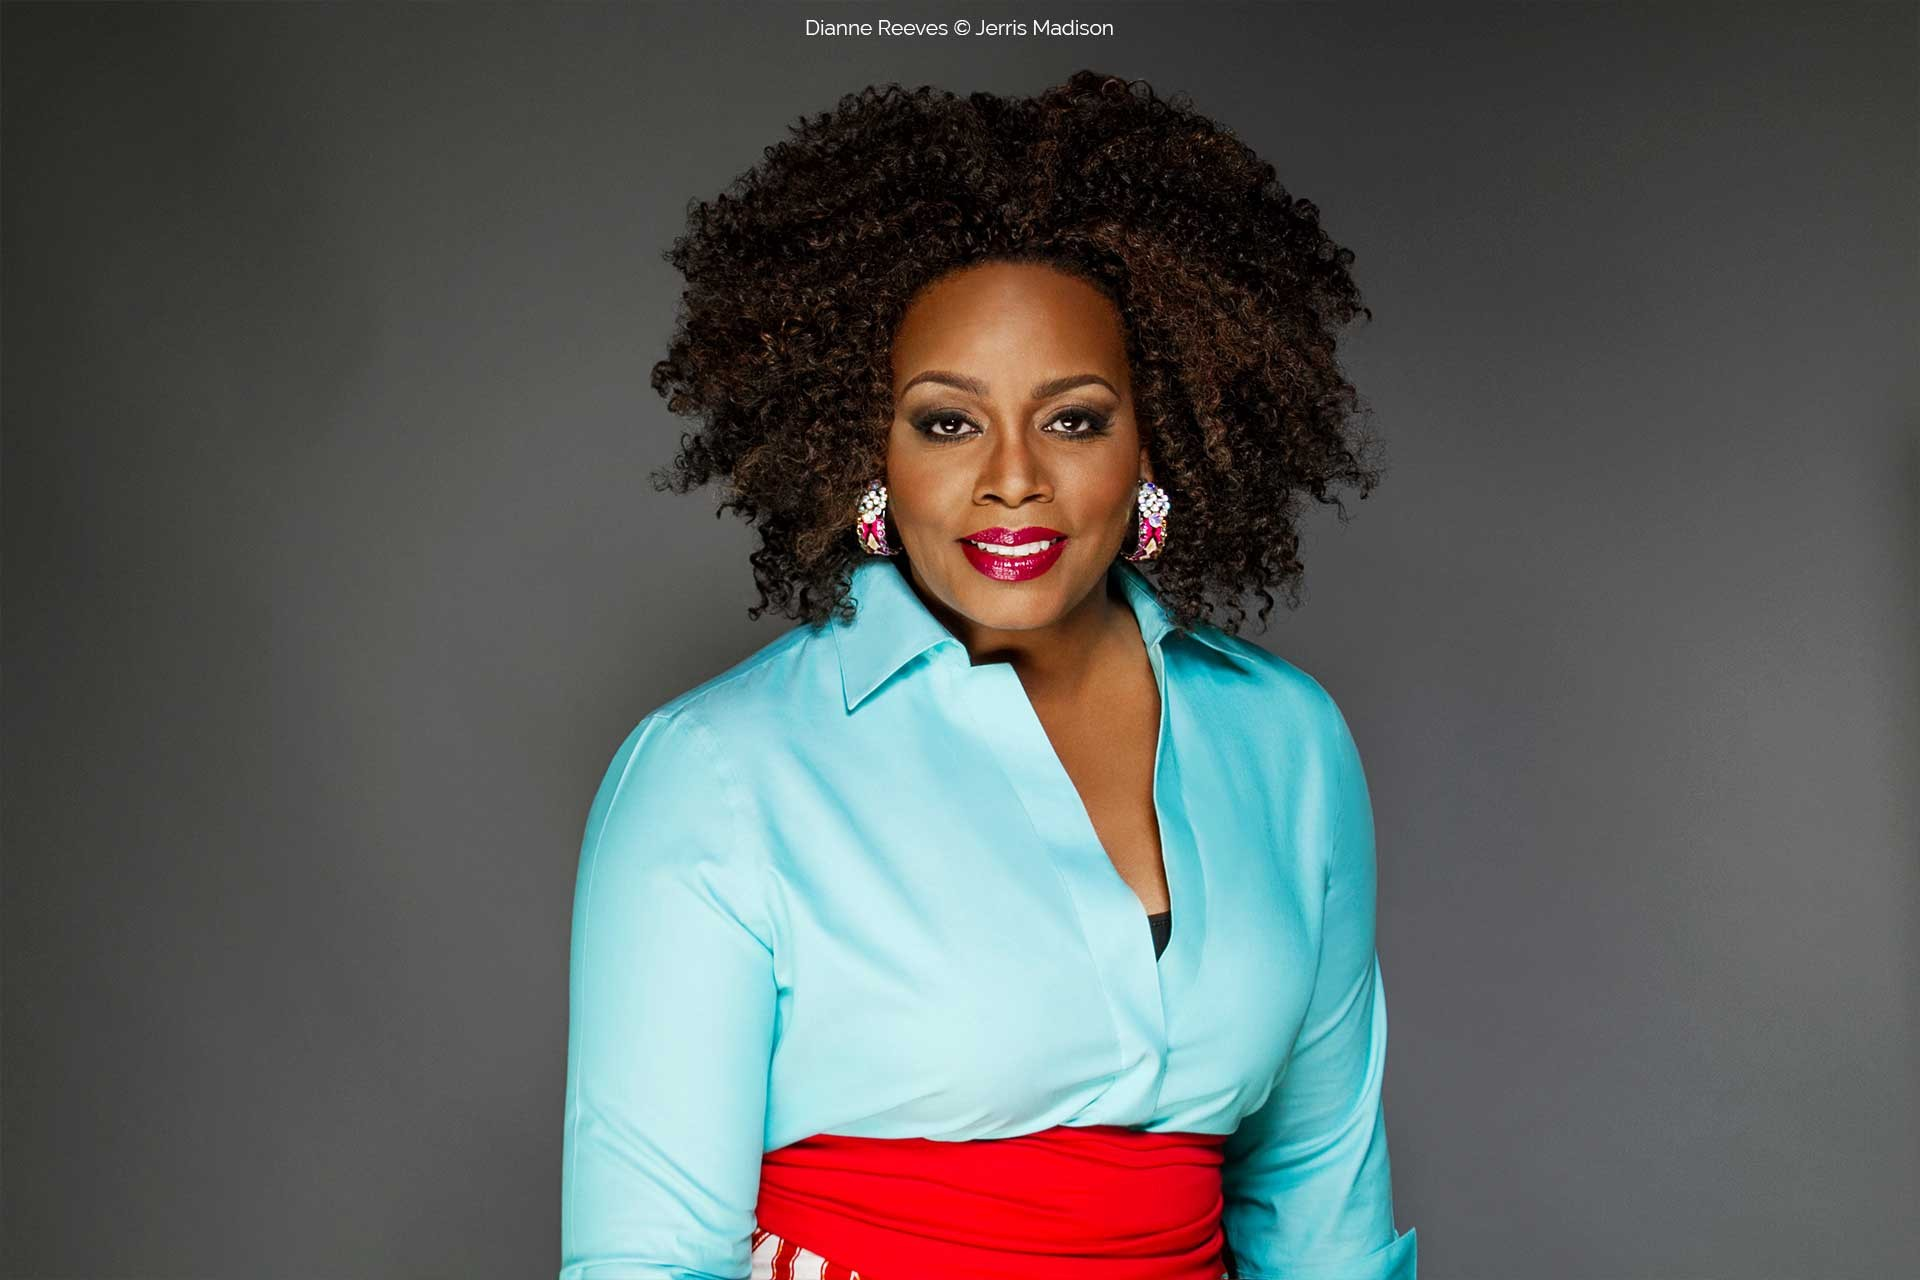 Dianne Reeves © Jerris Madison